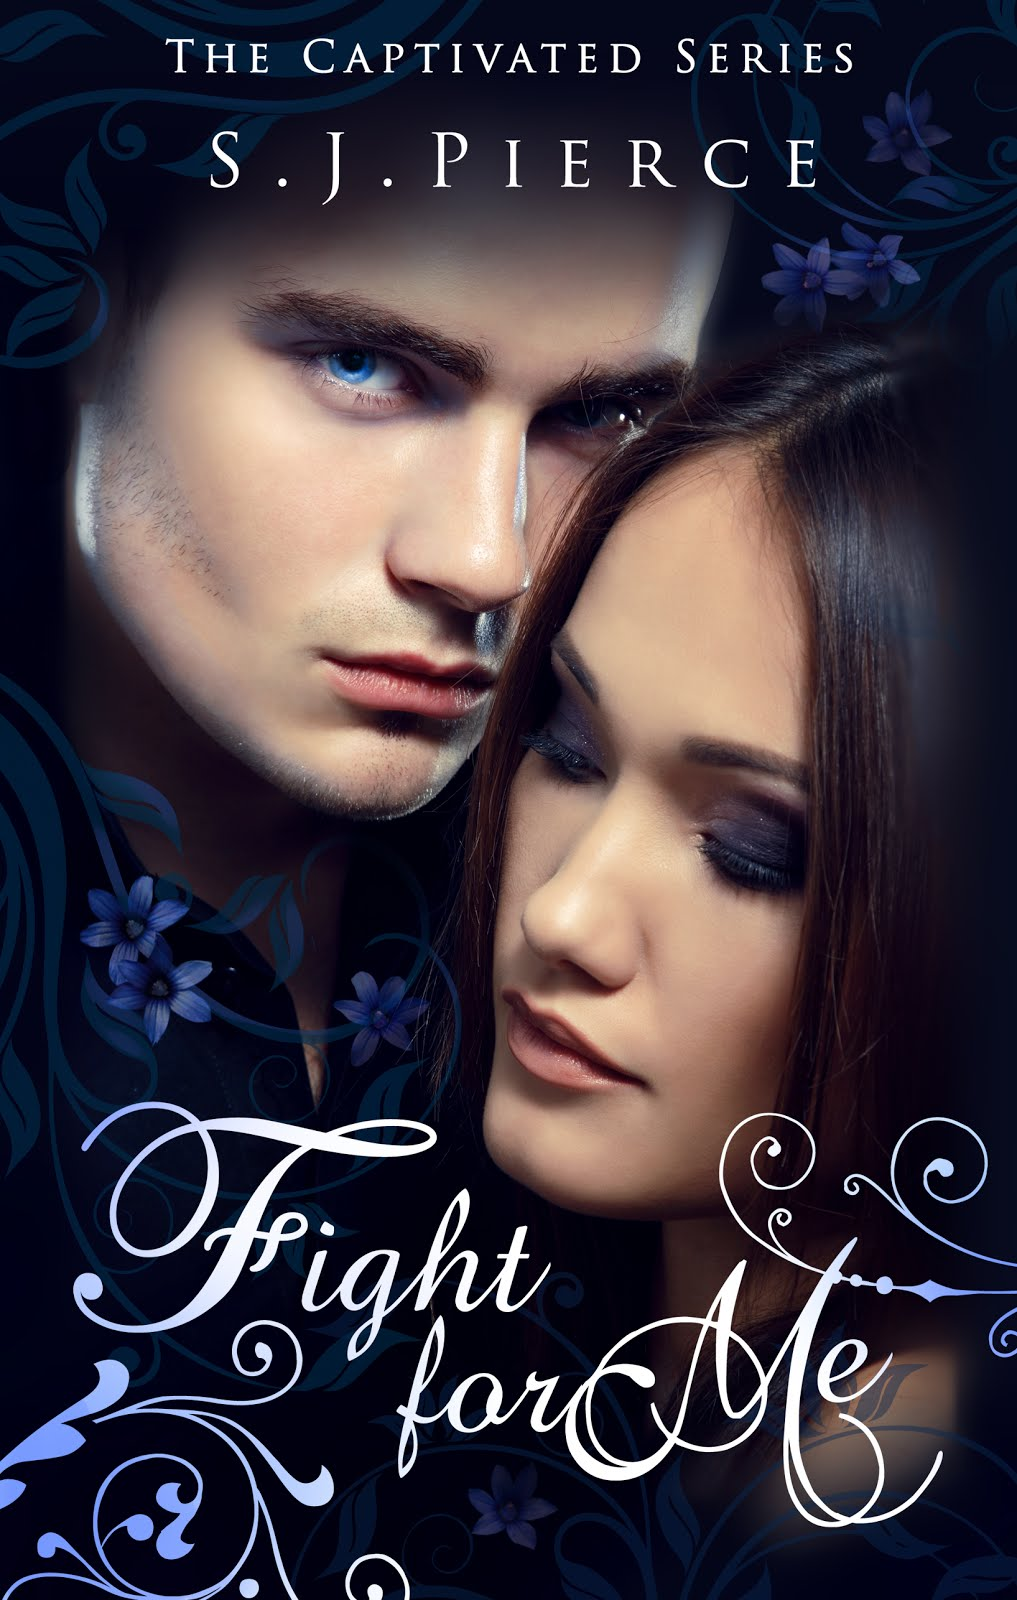 Captivate Me & Fight For Me (Captivated #1 & #2) by S. J. Pierce